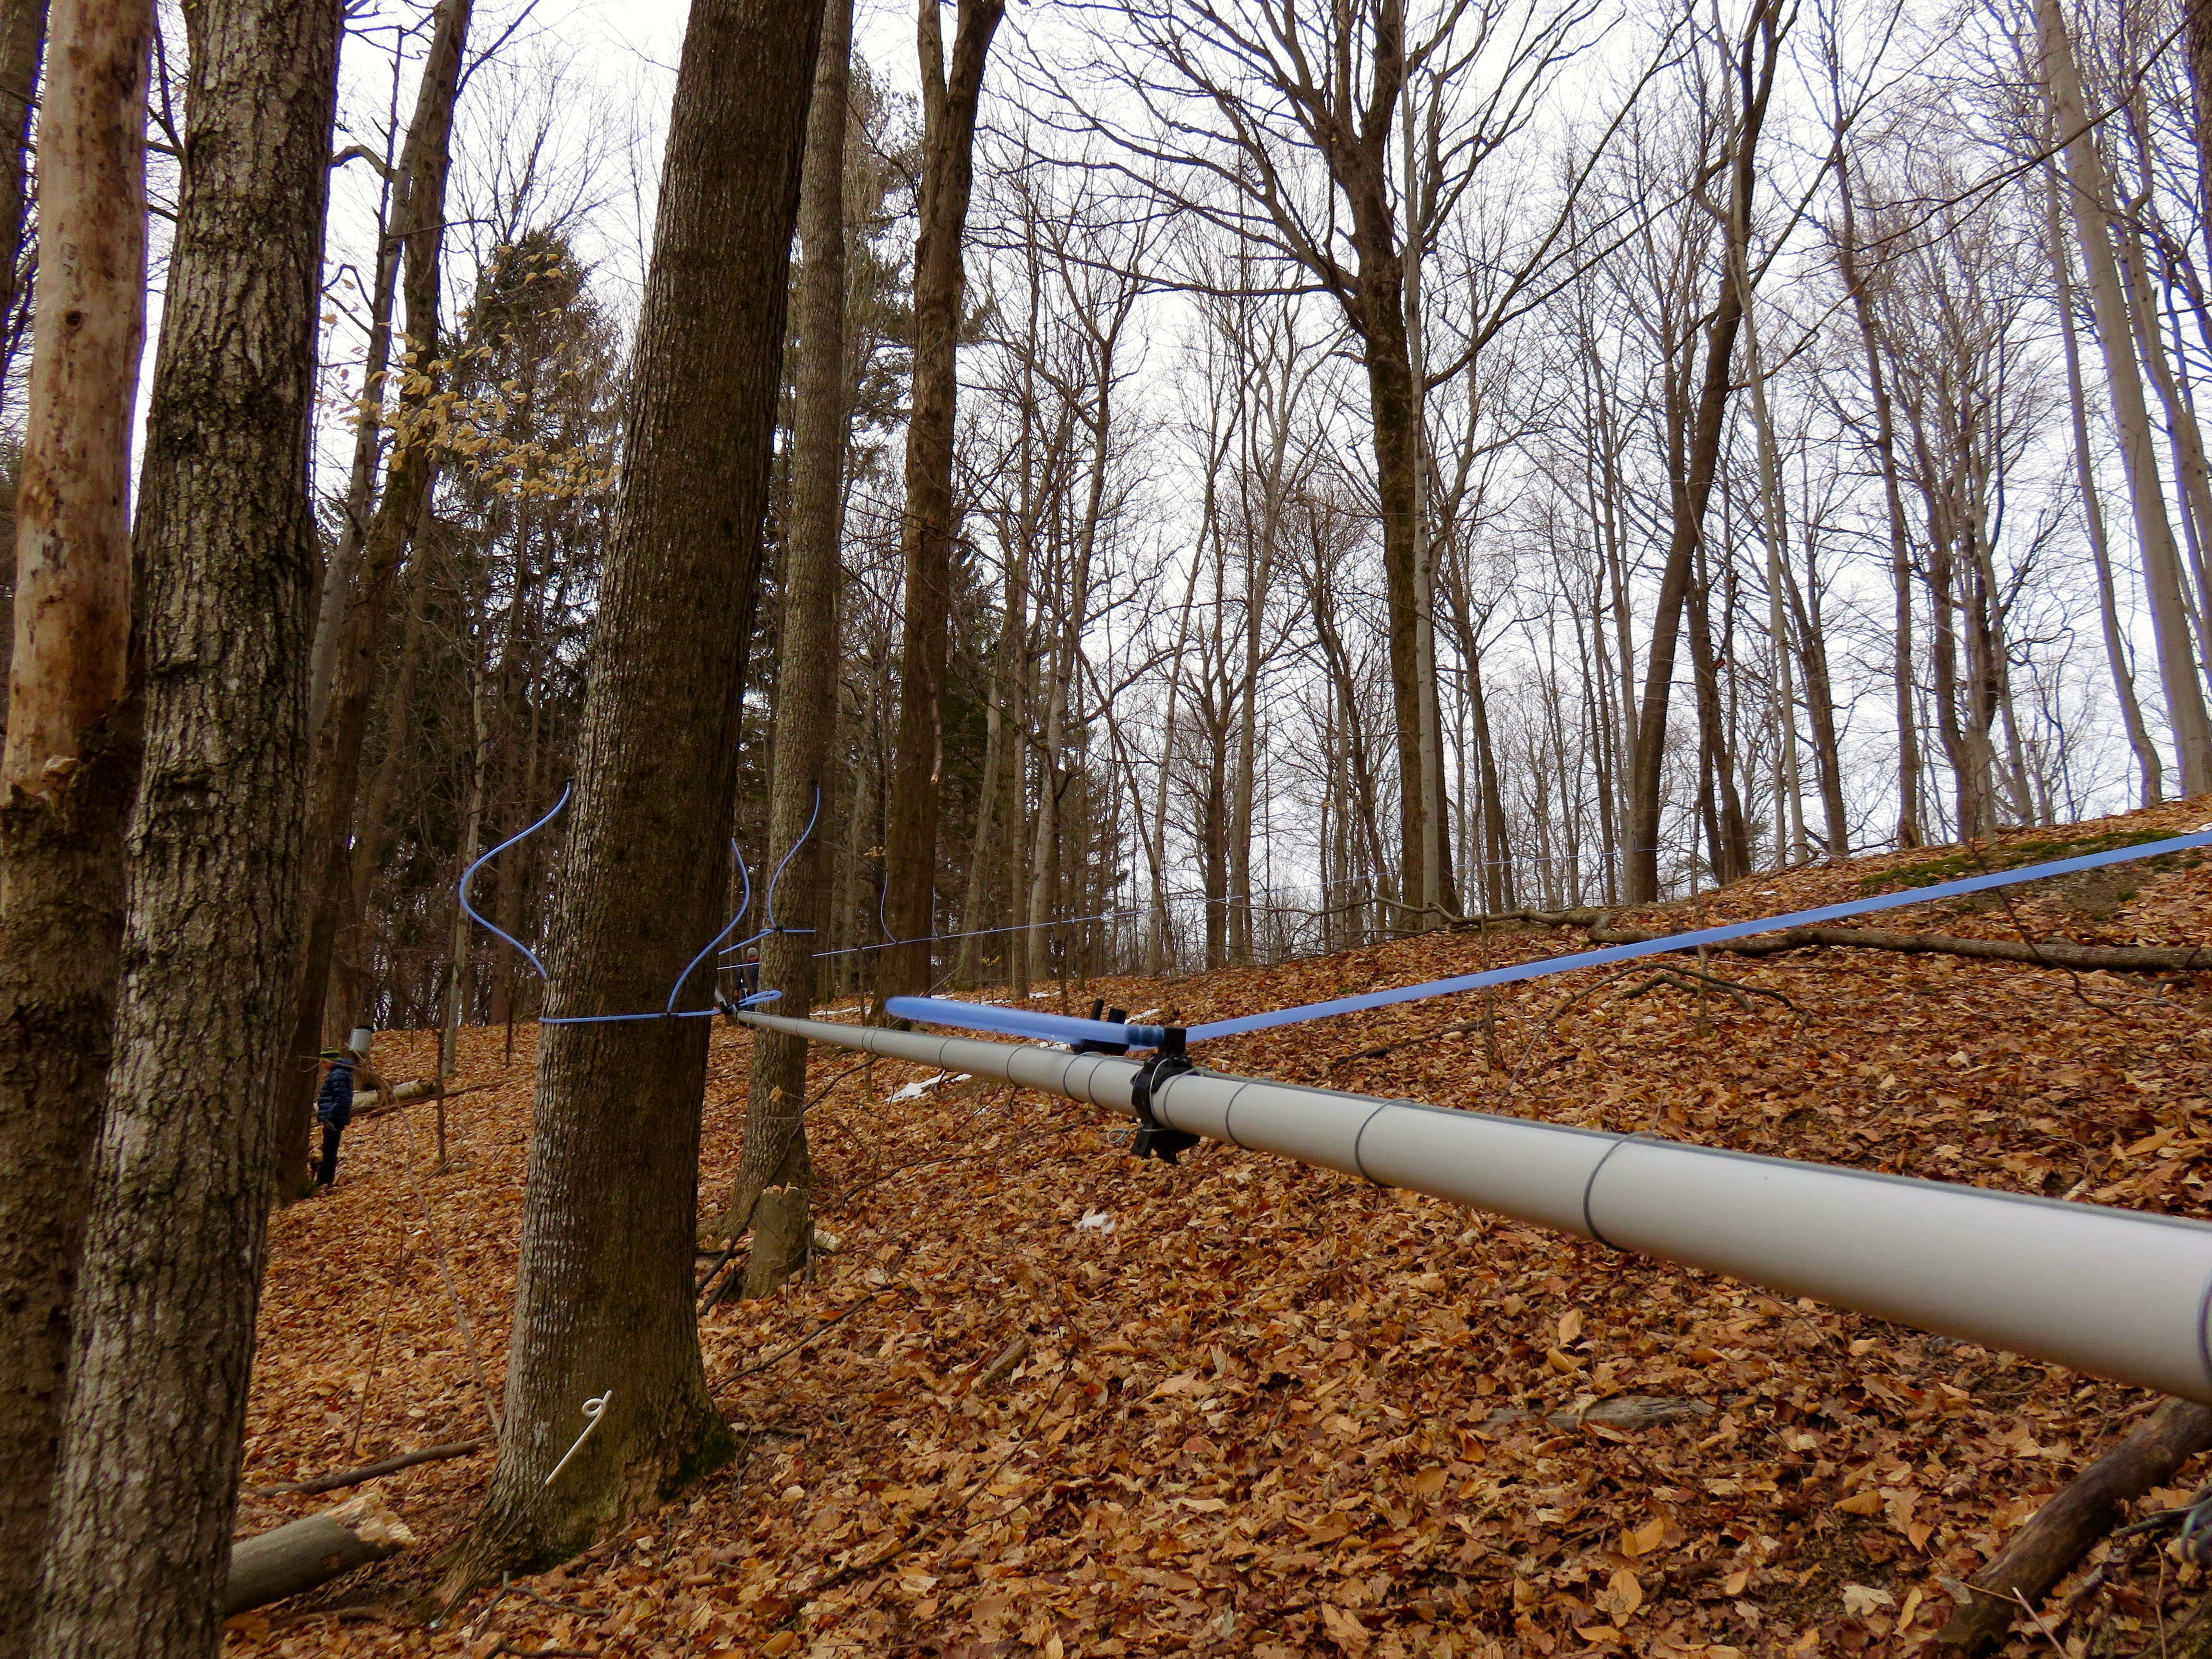 Sap lines running downhill but mostly frozen